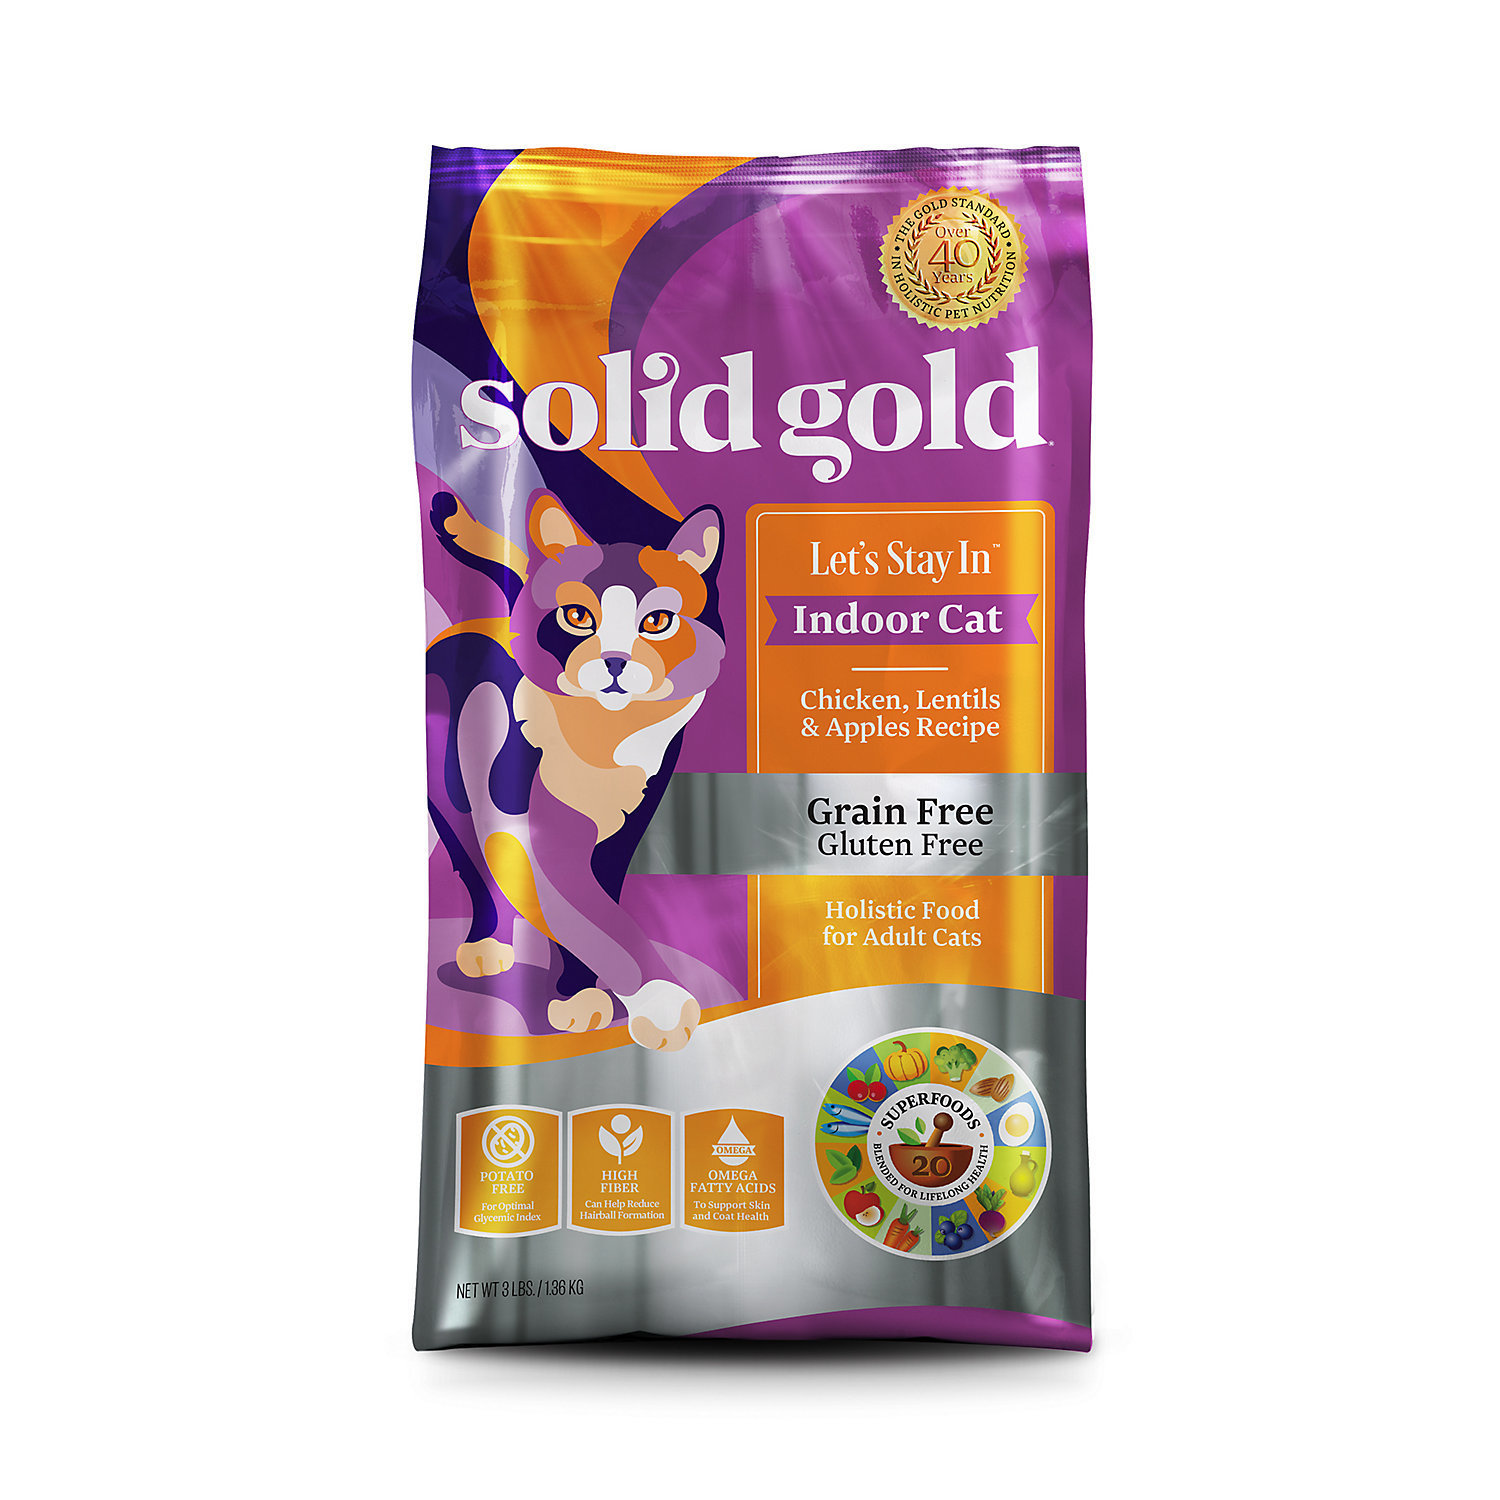 Solid Gold Let's Stay In Indoor Cat Chicken, Lentil & Apple Recipe for Adult Cat 6 lbs. (11/18) (A.O1)